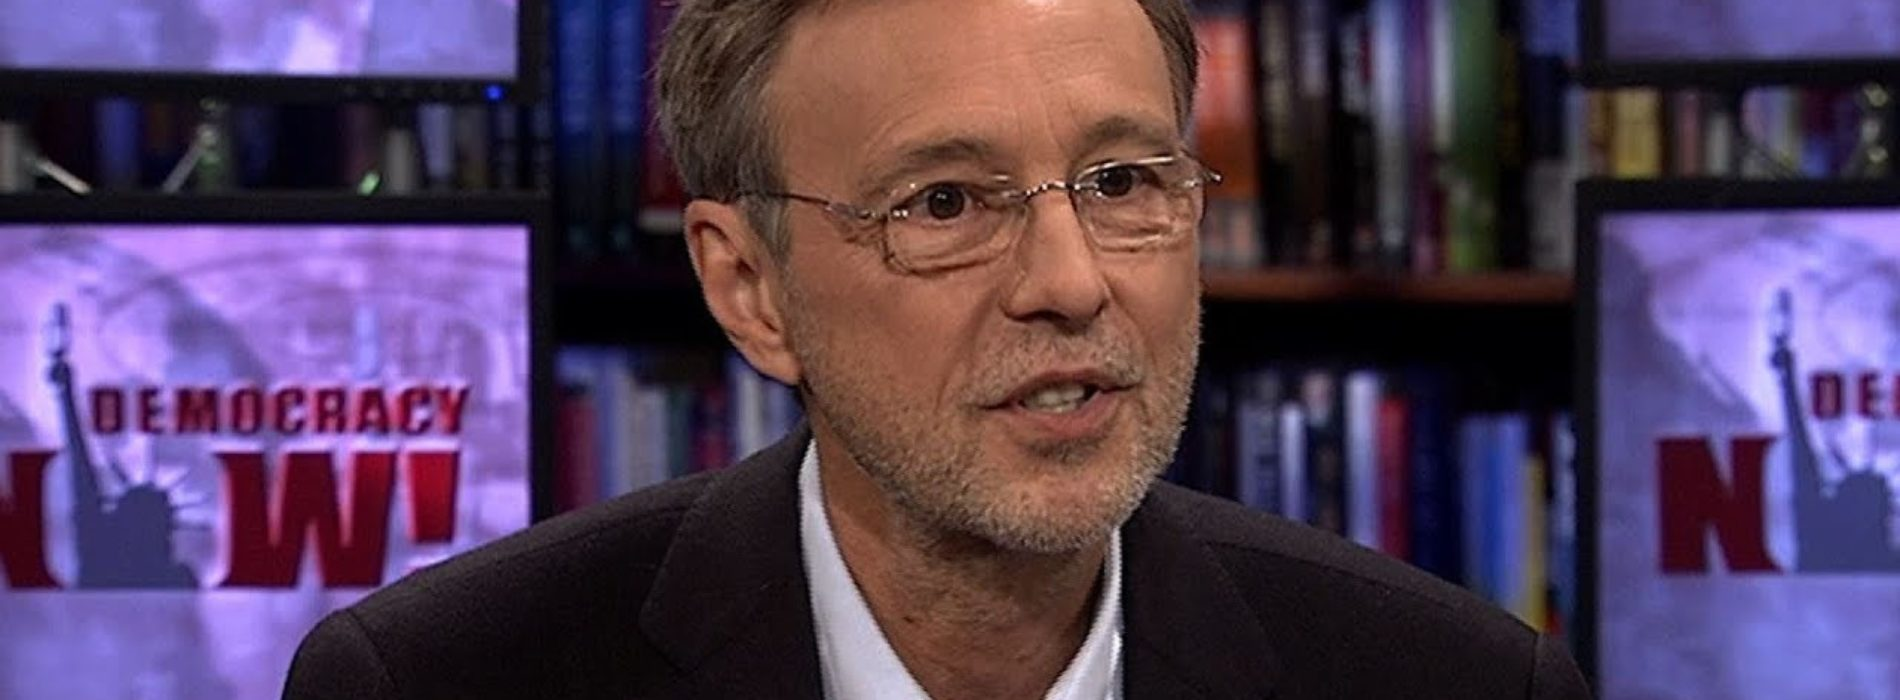 Thom Hartmann on The SnydeReport with Gary Snyder